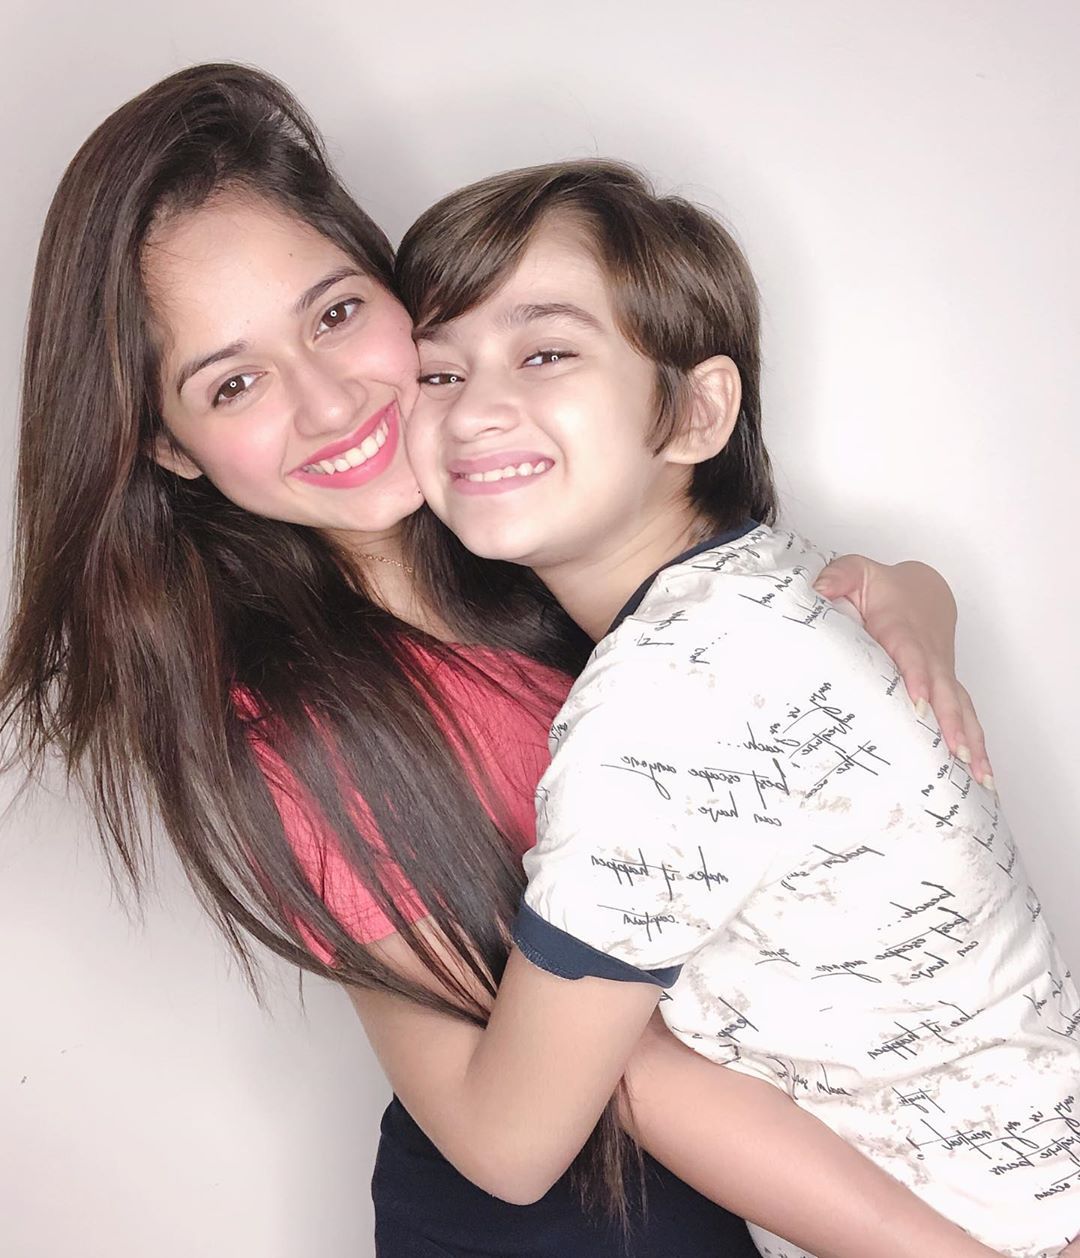 23. Jannat poses with her younger brother